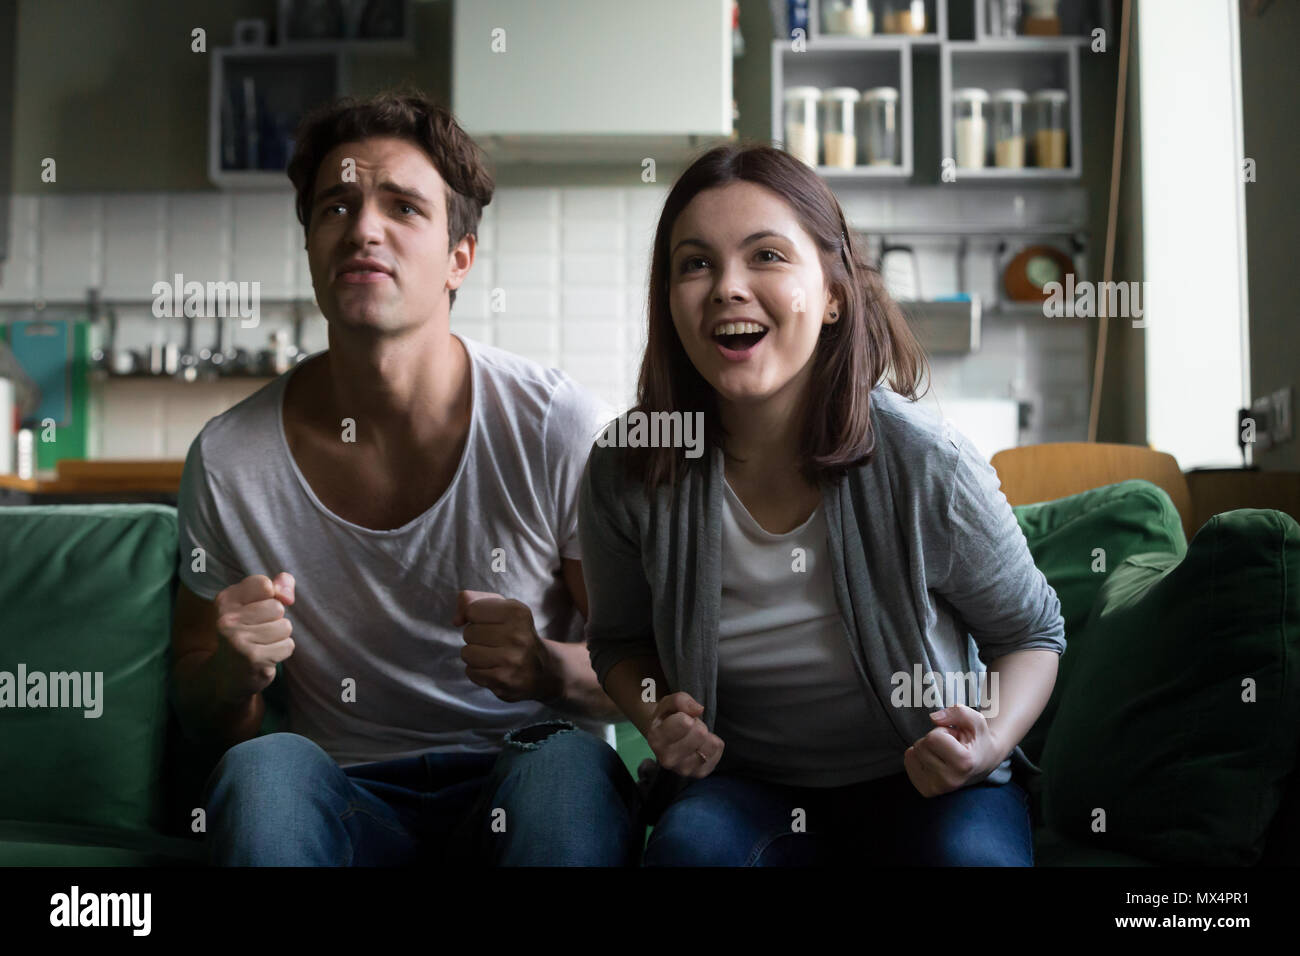 Couple cheering supporting winning team watching tv game at home - Stock Image